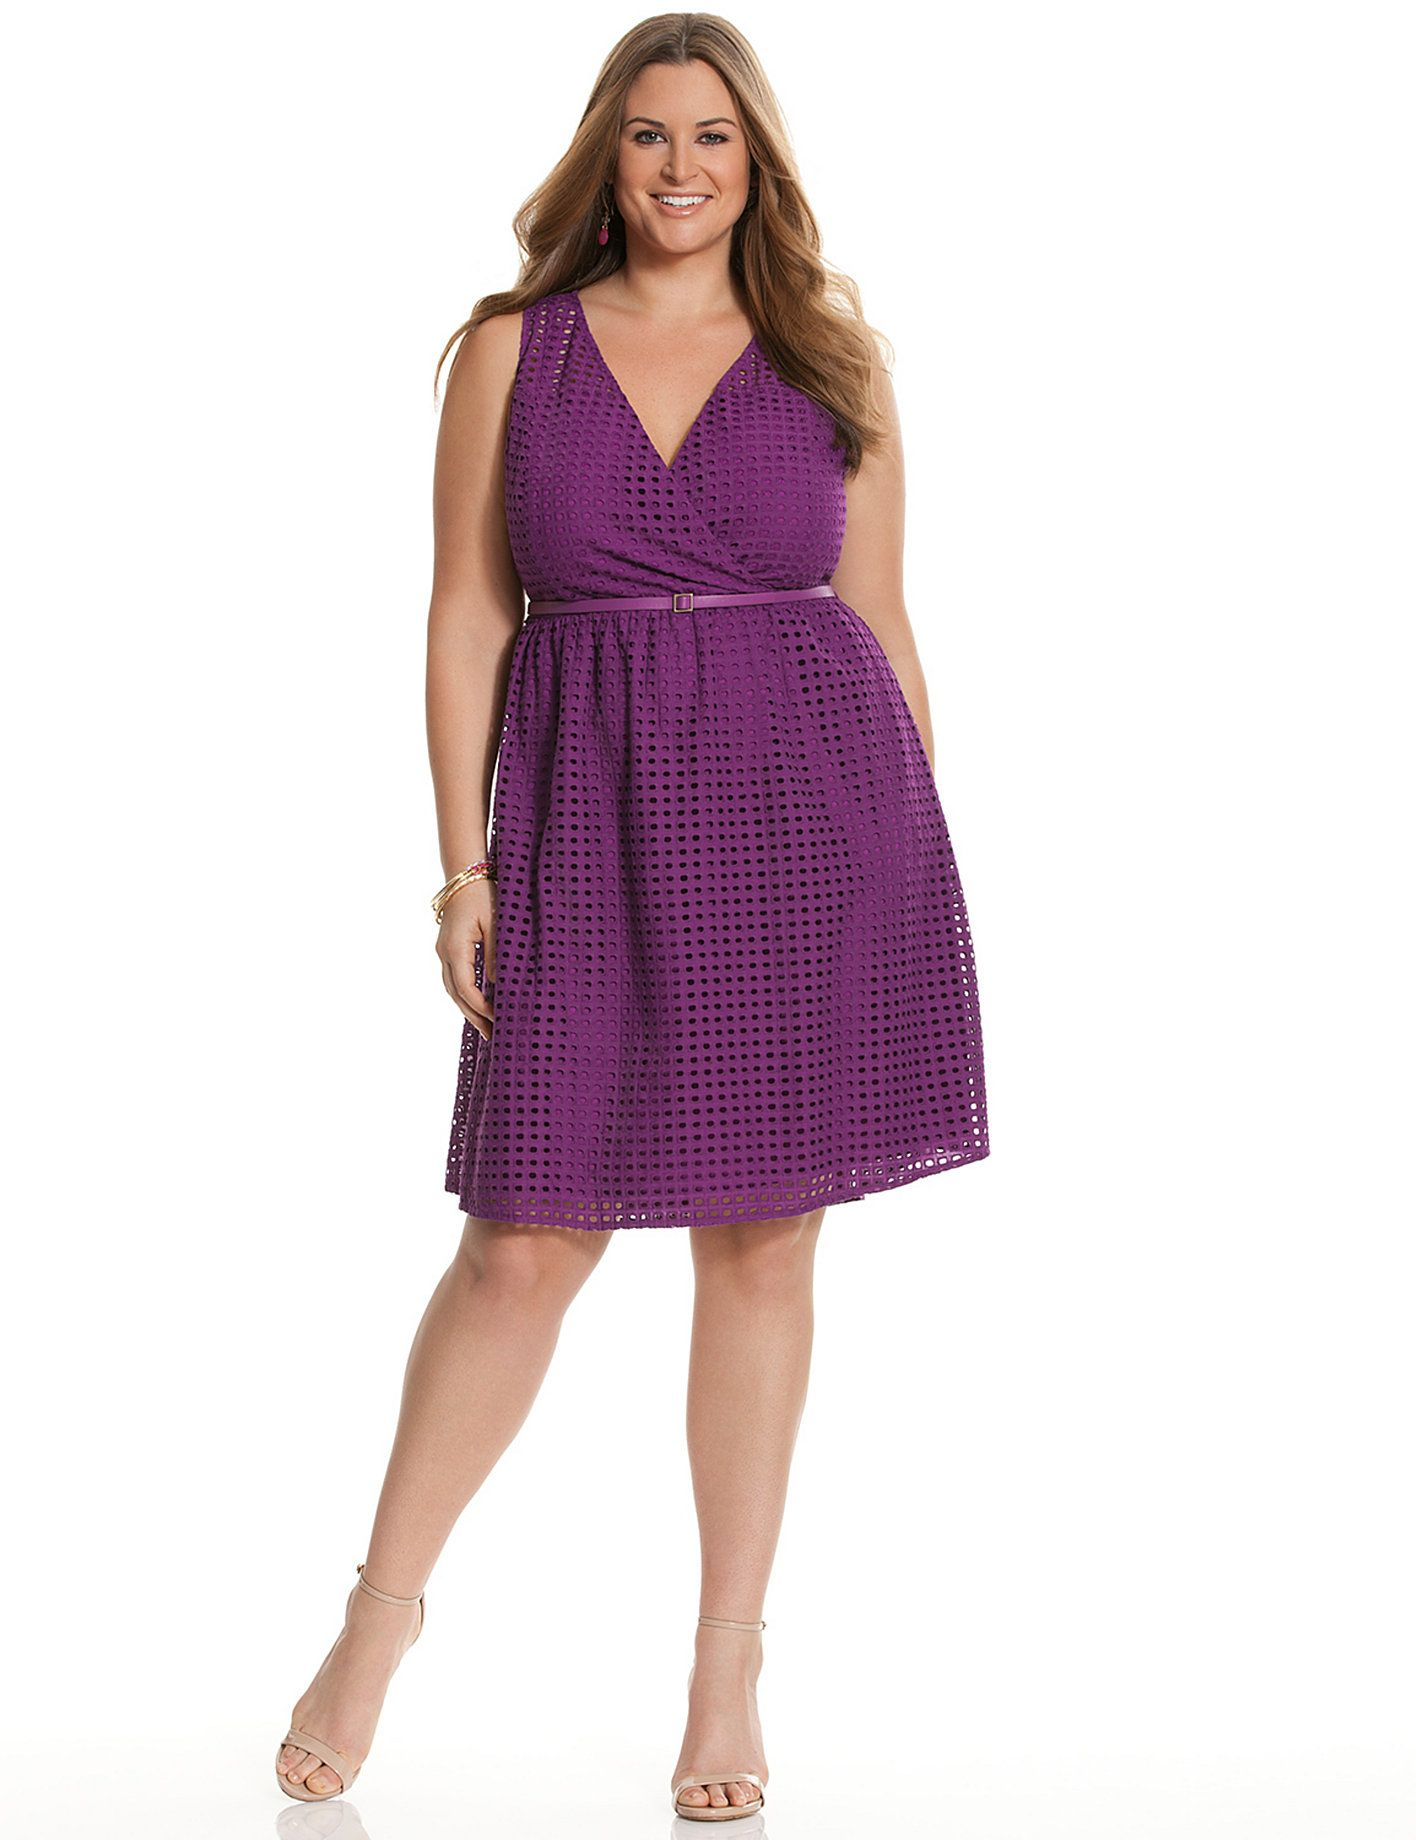 Plus Size Dresses & Skirts for Women Size 14-28 | Lane Bryant ...